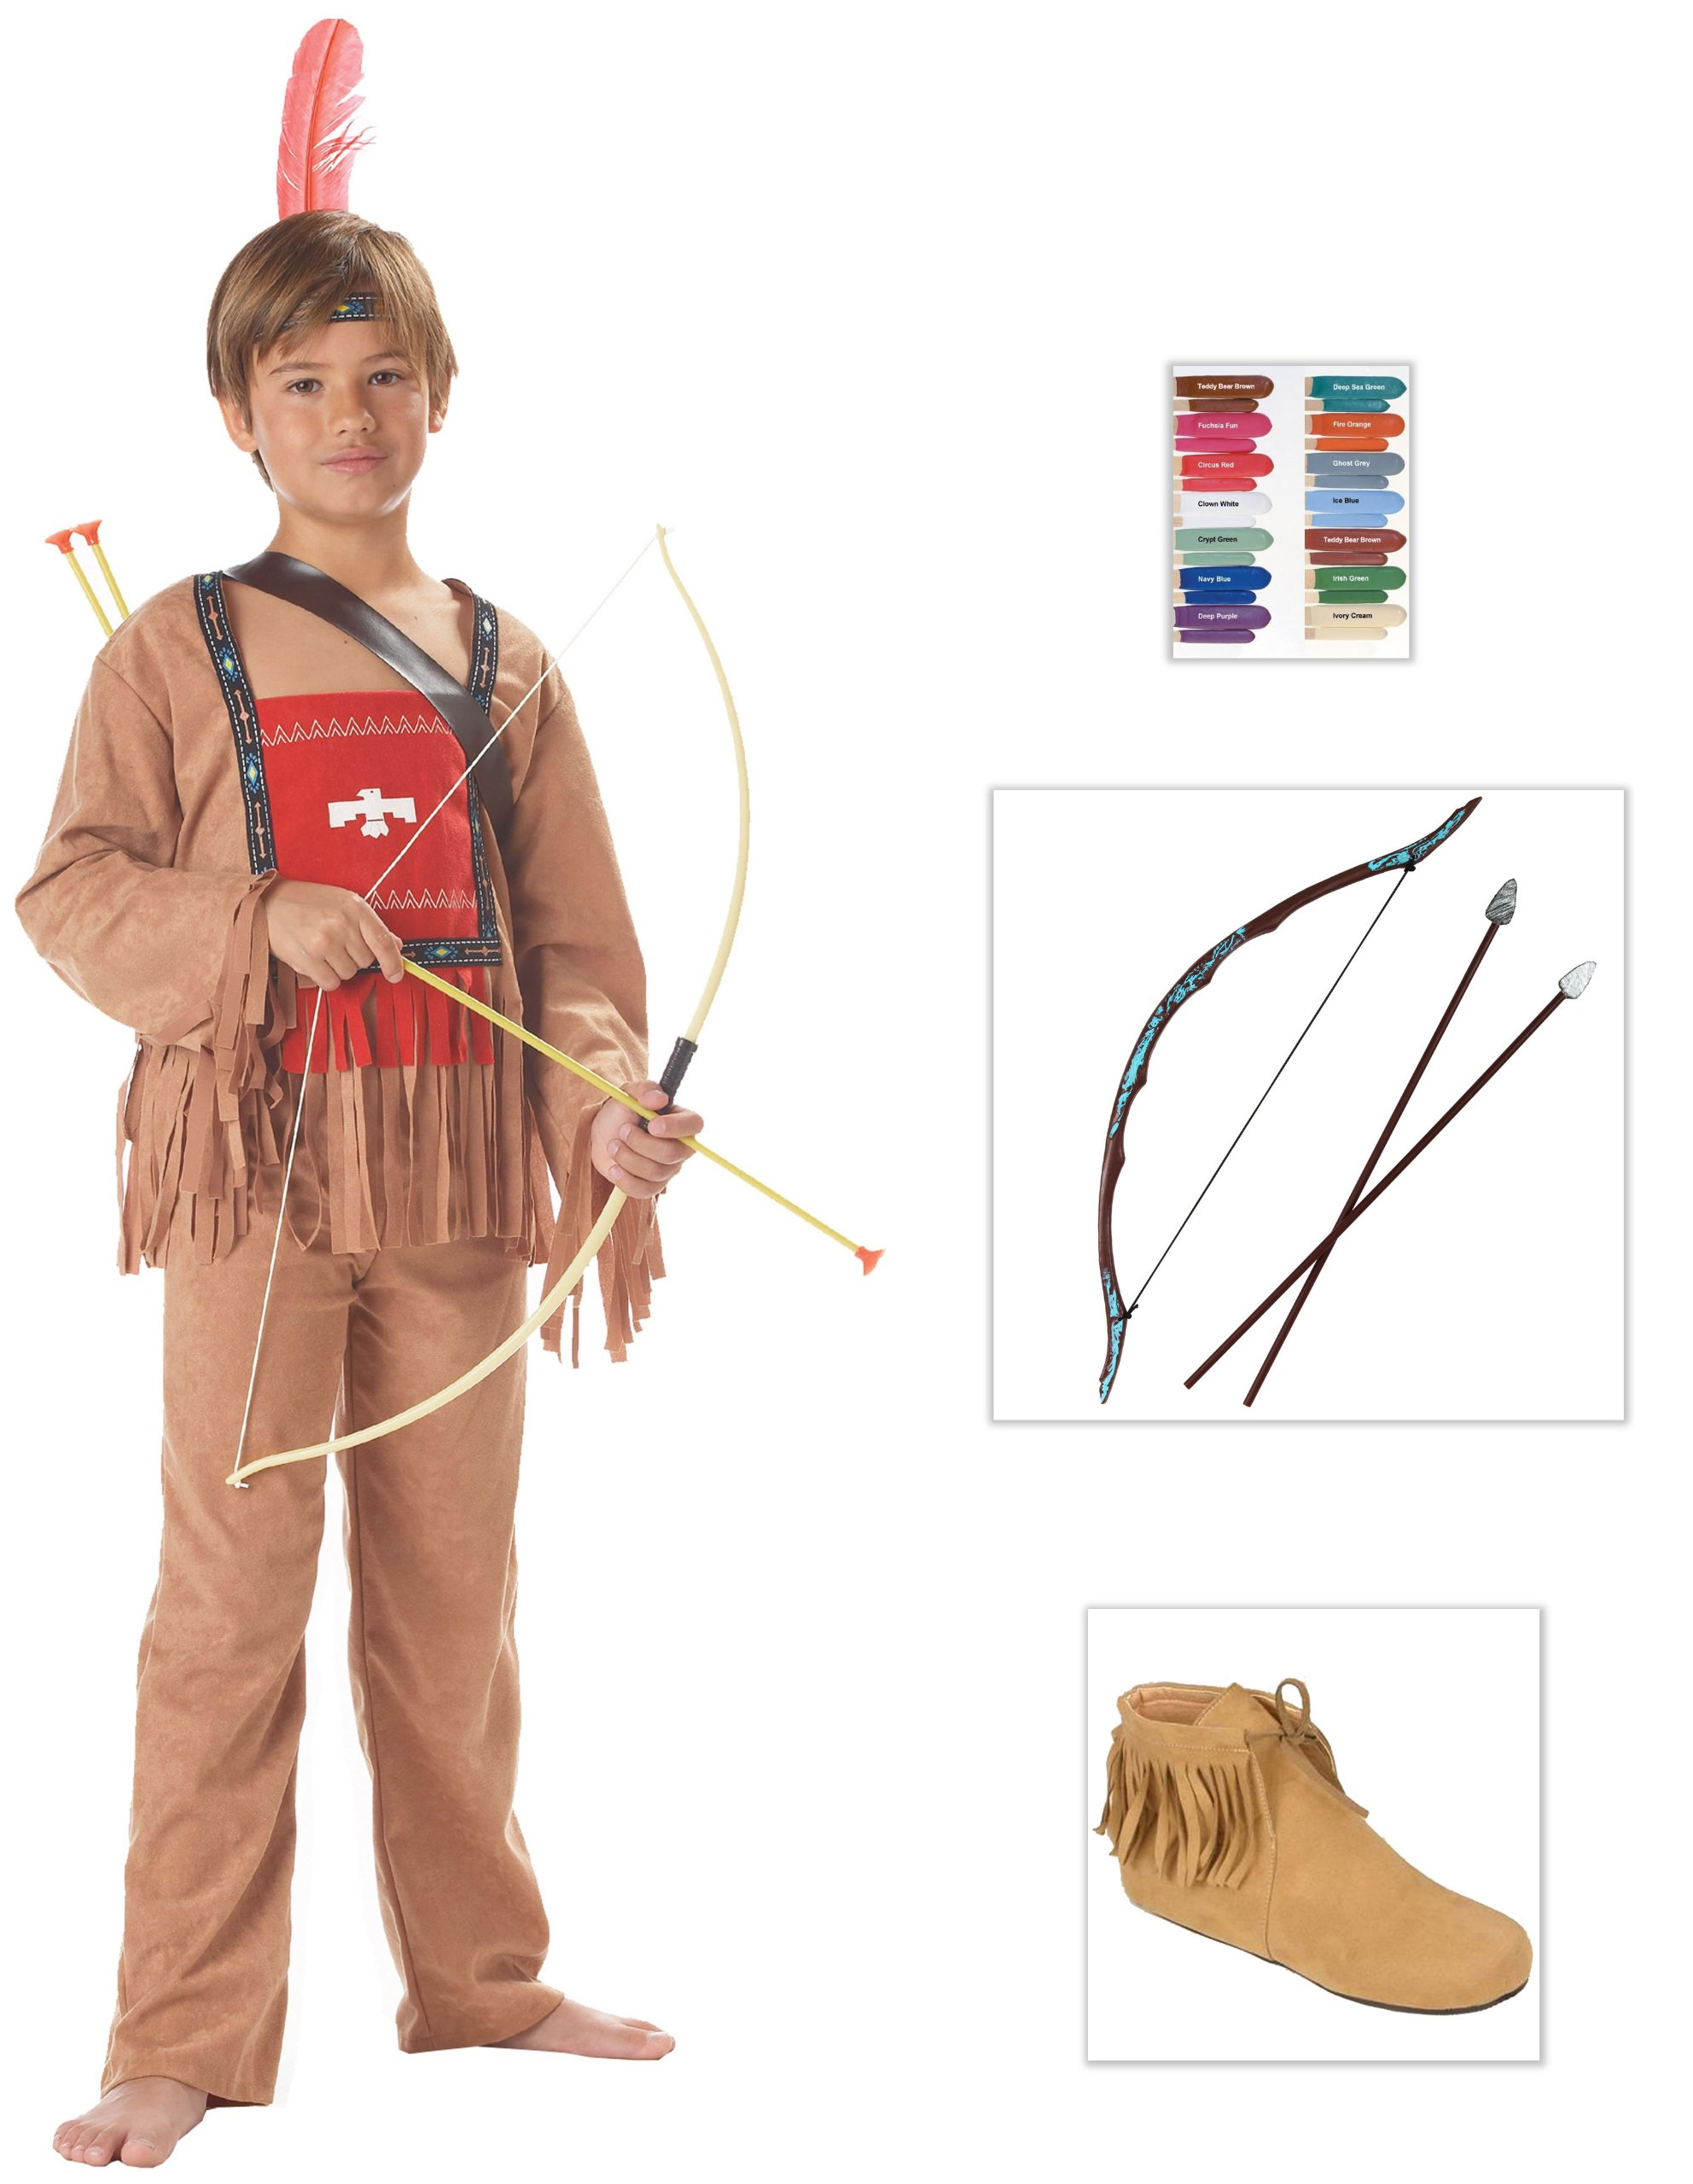 Running Bull Child Costume, Boots in S (11-12), Disguise Stix and Bow-Arrow Set